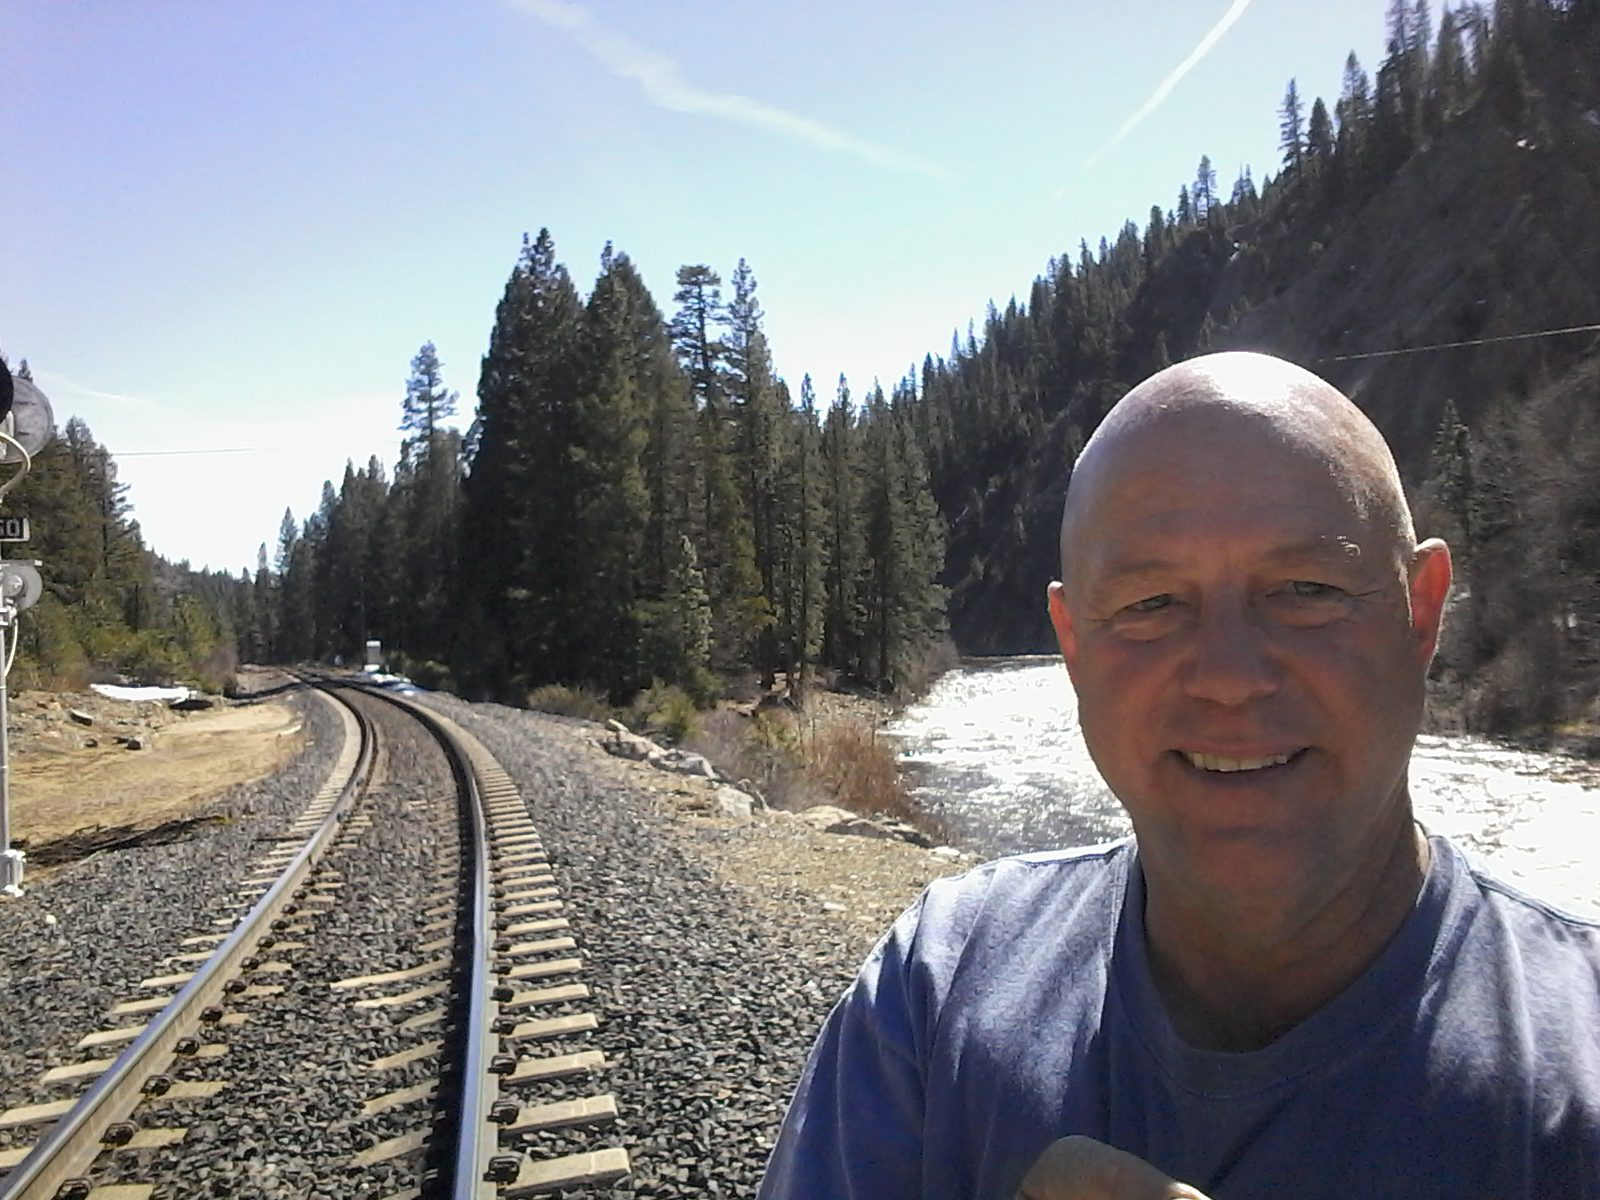 Clifford at Union Pacific rail track along Feather River, Portola CA.